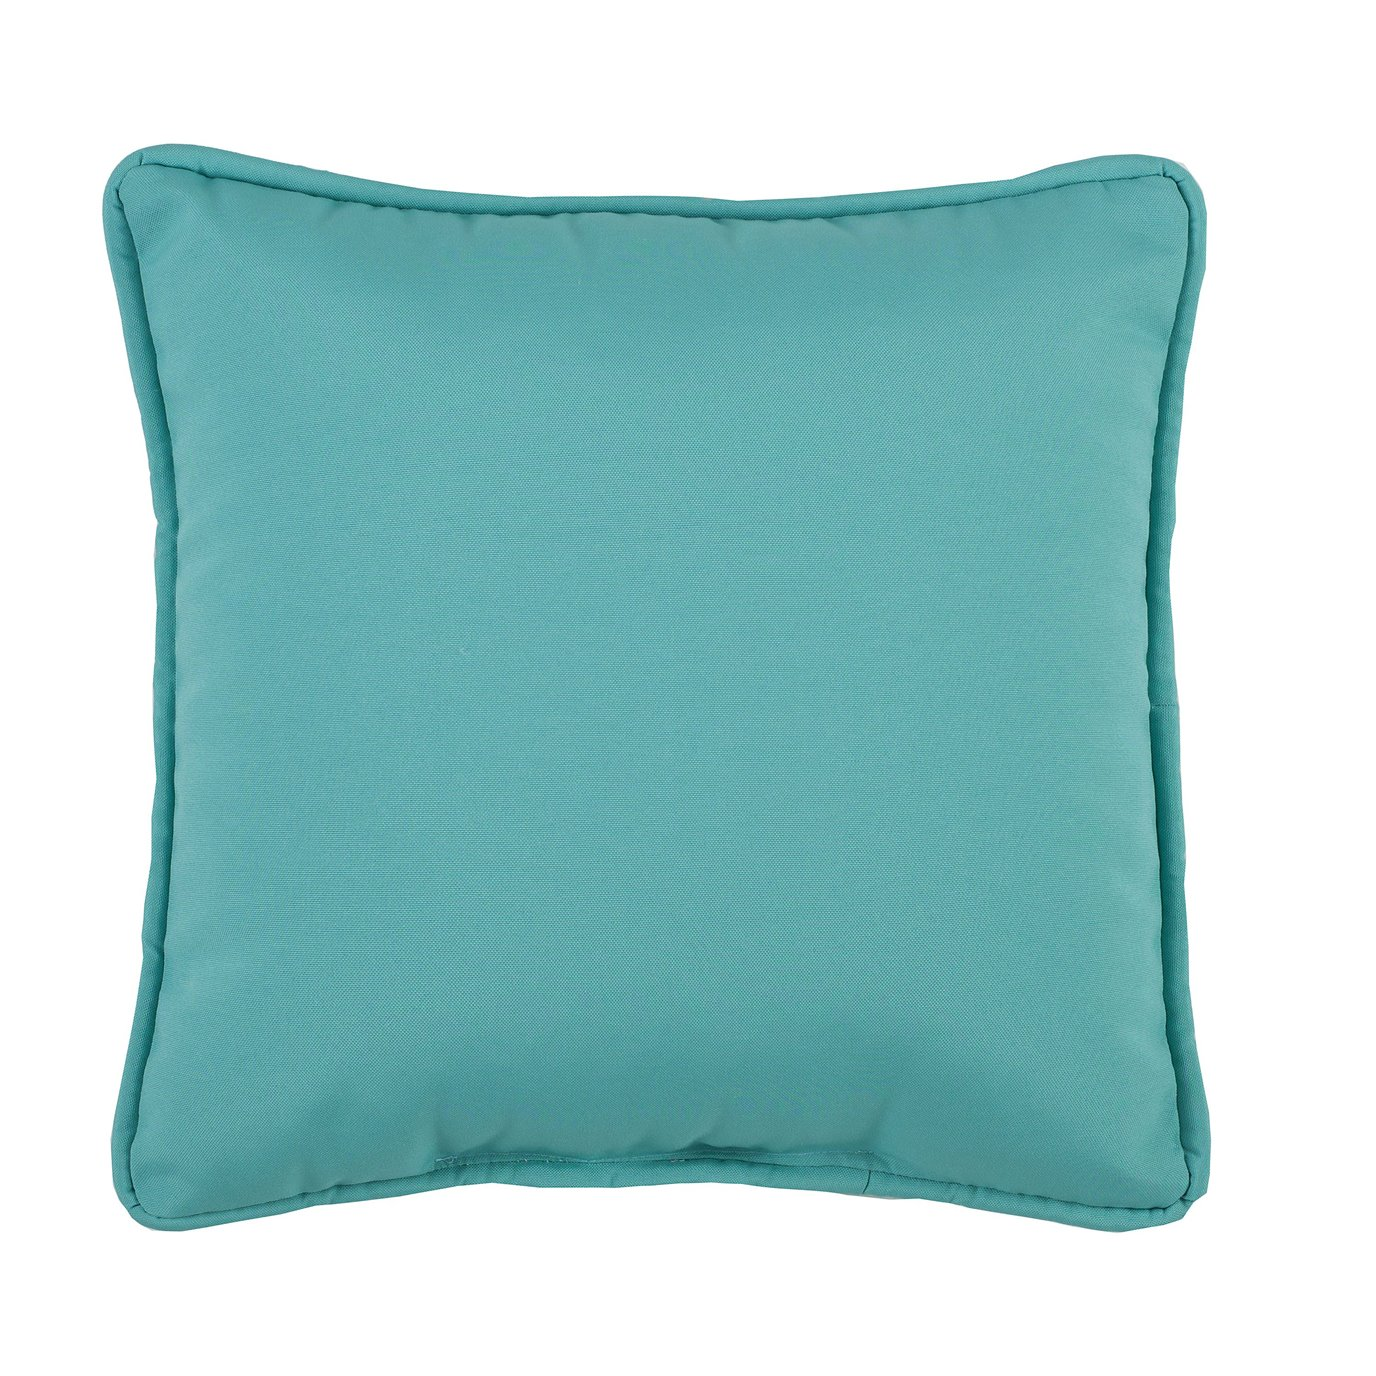 Tropical Paradise Blue Square Pillow - Teal